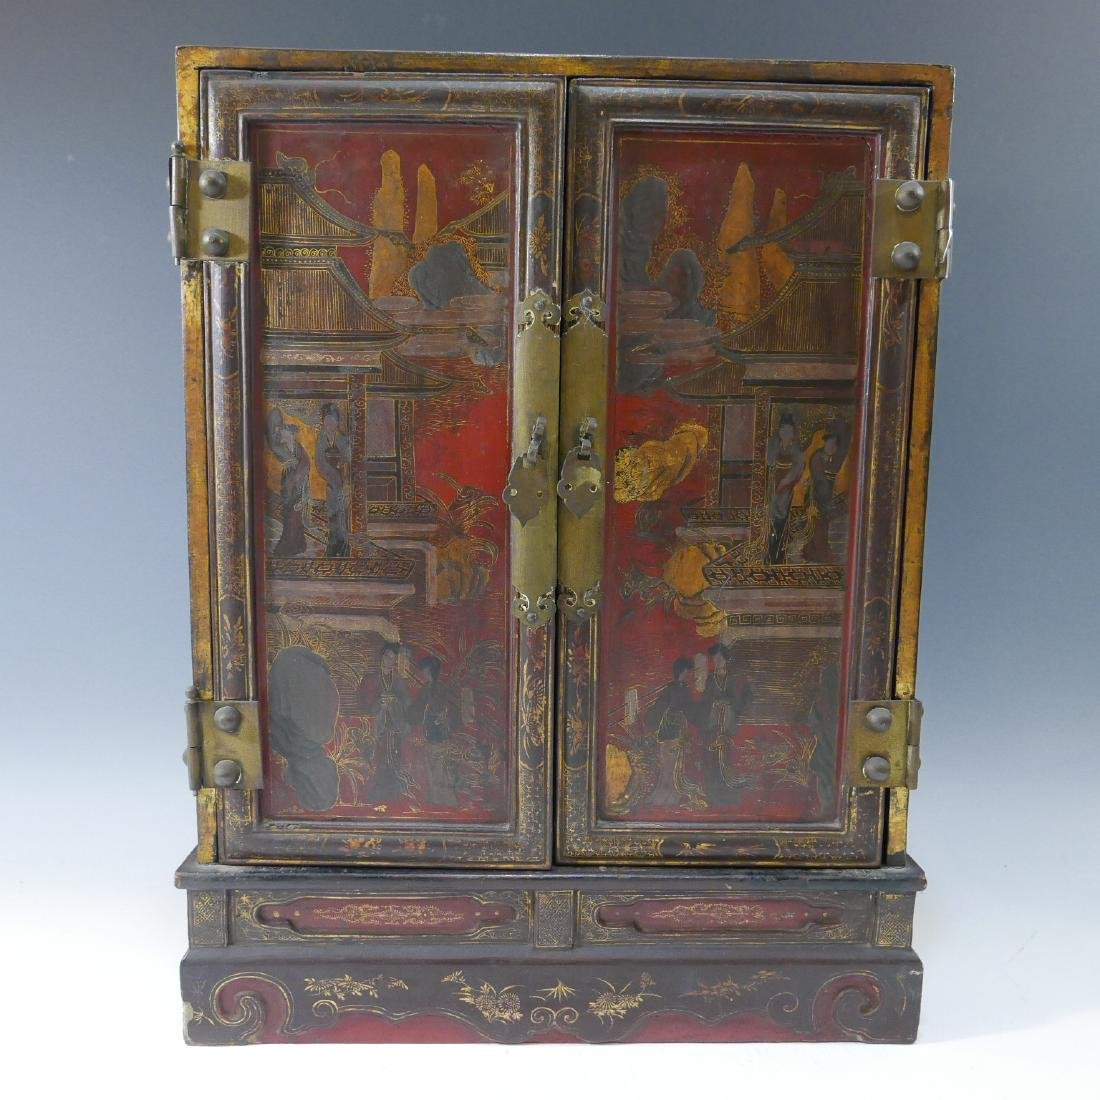 CHINESE ANTIQUE PAINTED LACQUER WOOD CABINET - QING